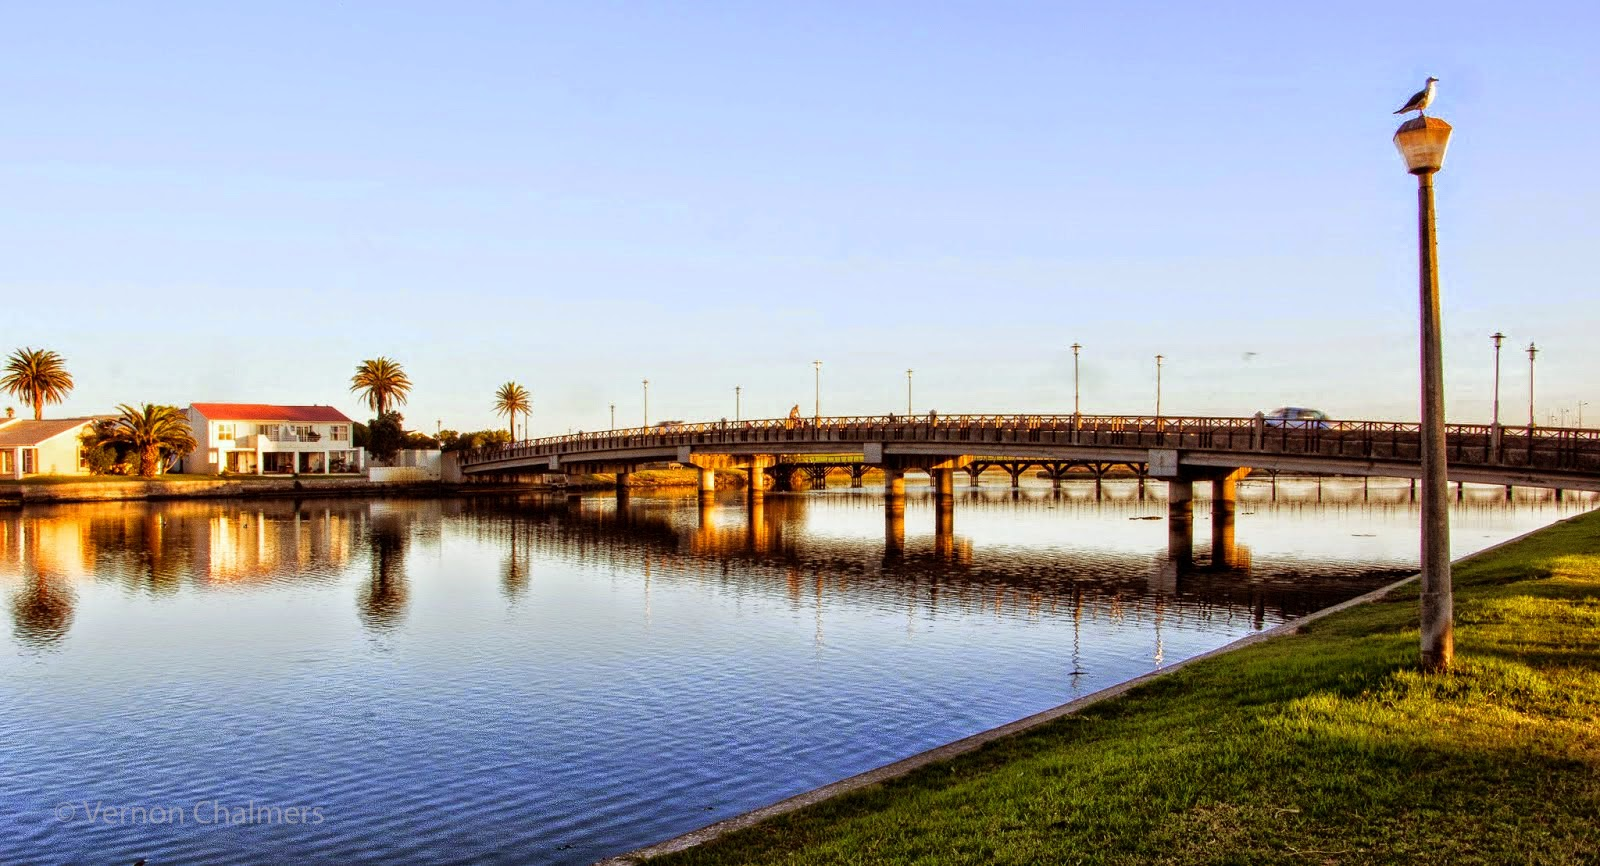 Copyright Vernon Chalmers: Main Bridge on Milnerton Lagoon